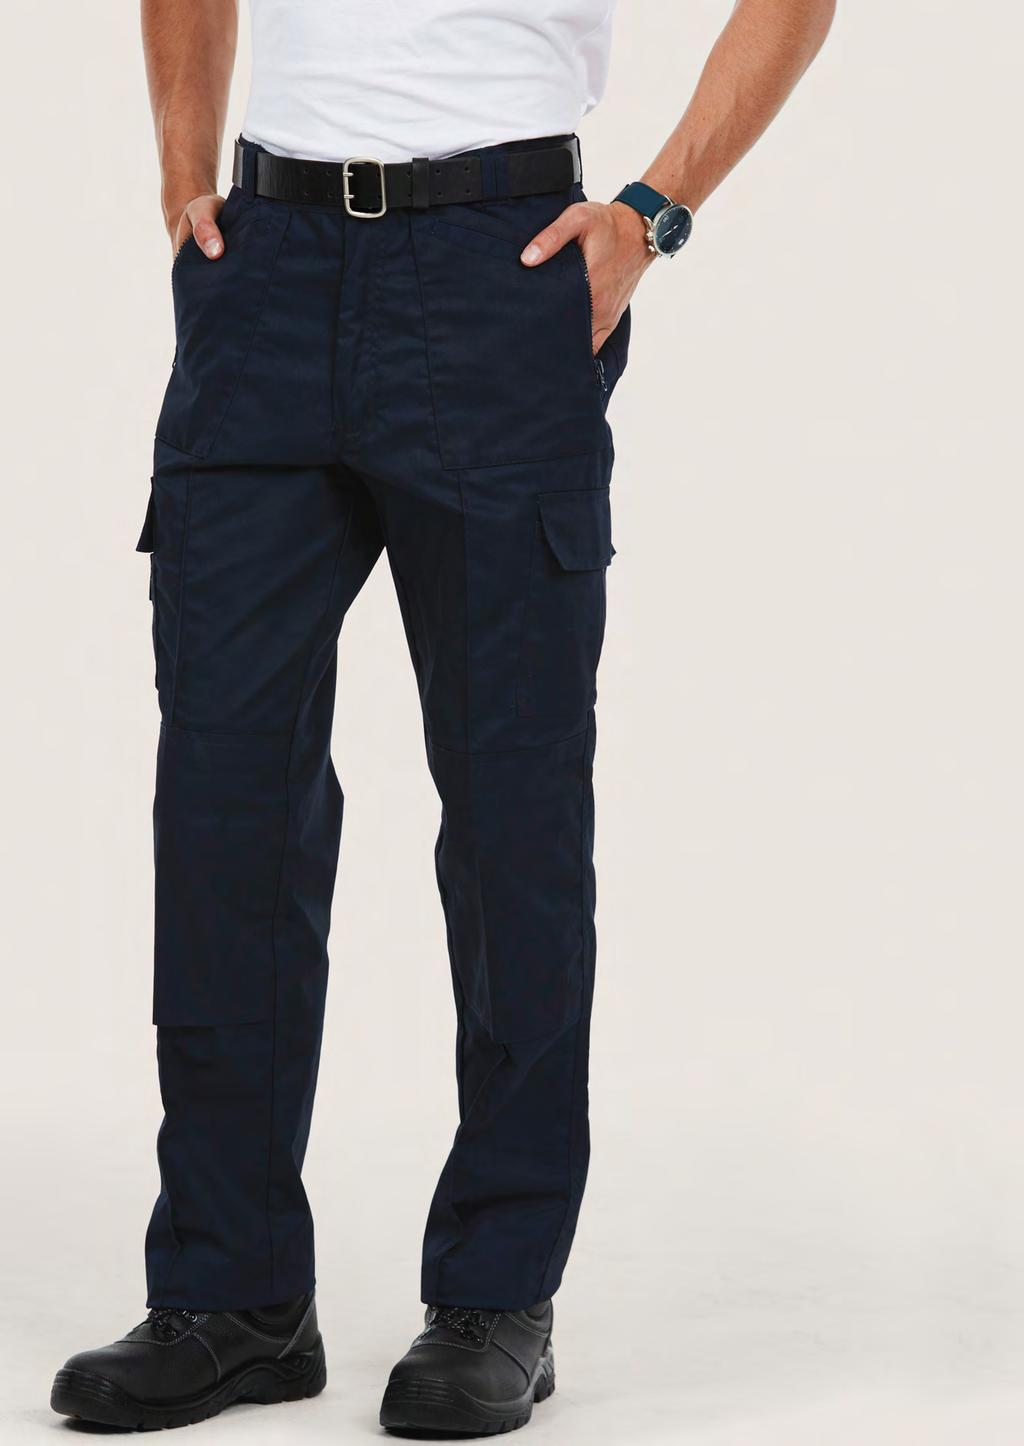 TROUSERS UC903 UNISEX ACTION TROUSER 245 60 25/5 65% Polyester 35% Cotton Fabric: 245 /7 oz Flat front with sewn-in front crease Four Slanted front pockets Two Side Zipped Pockets Two thigh pockets